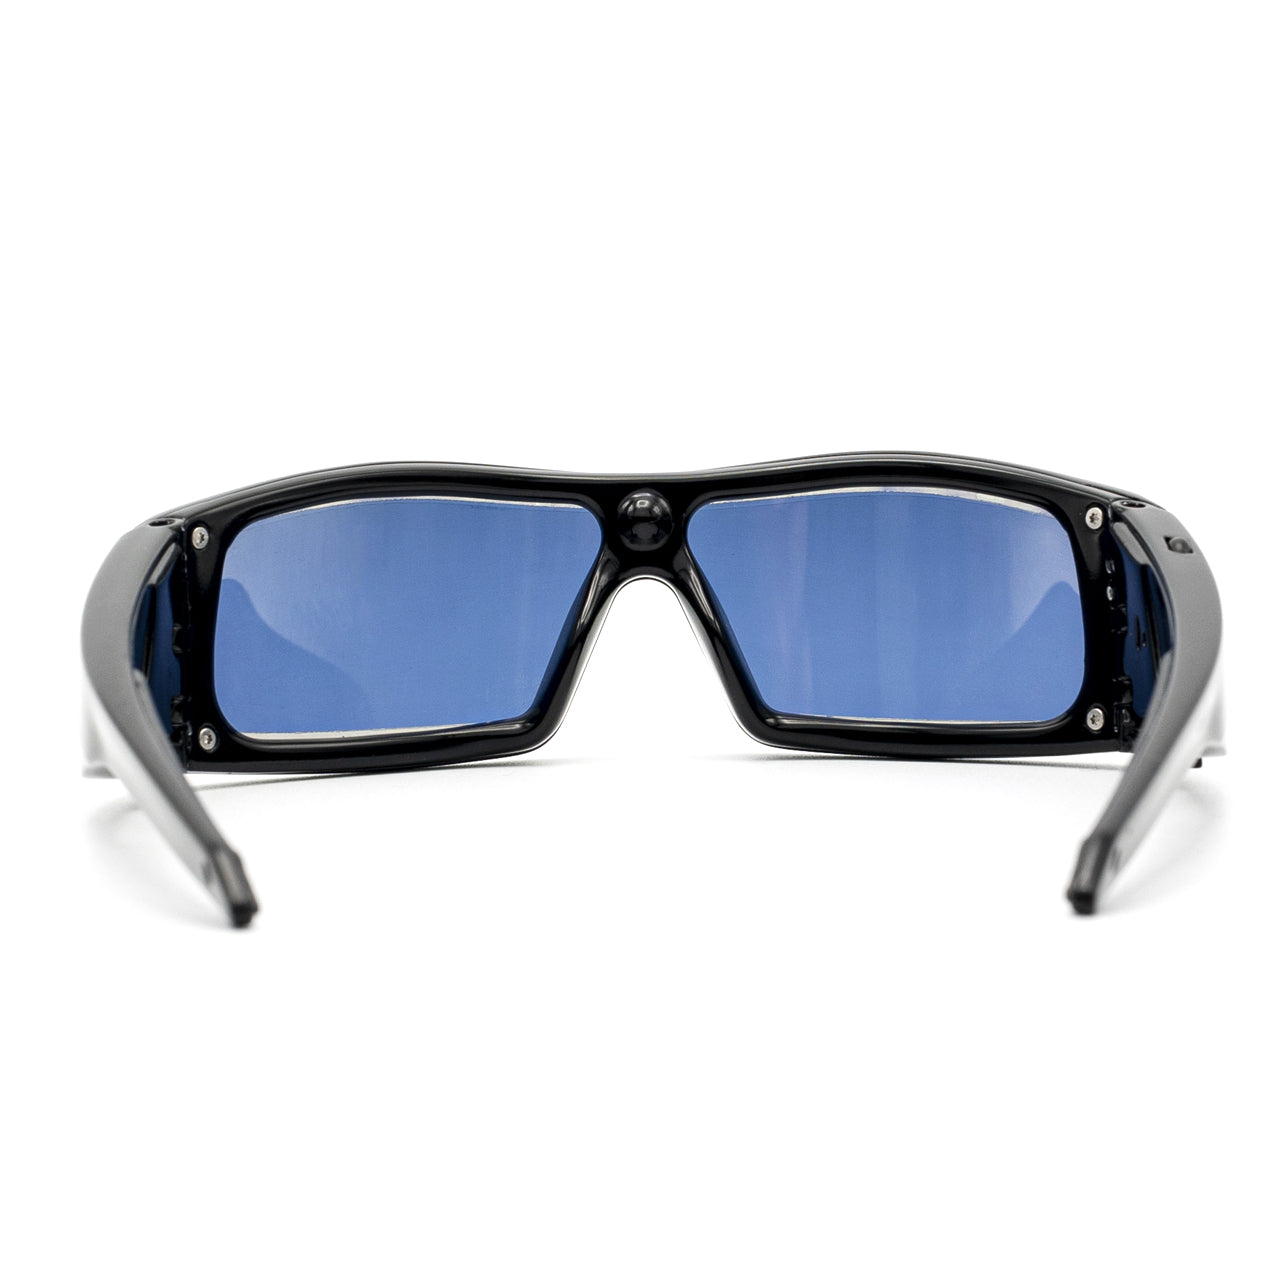 Fades Auto Dimming Sunglasses